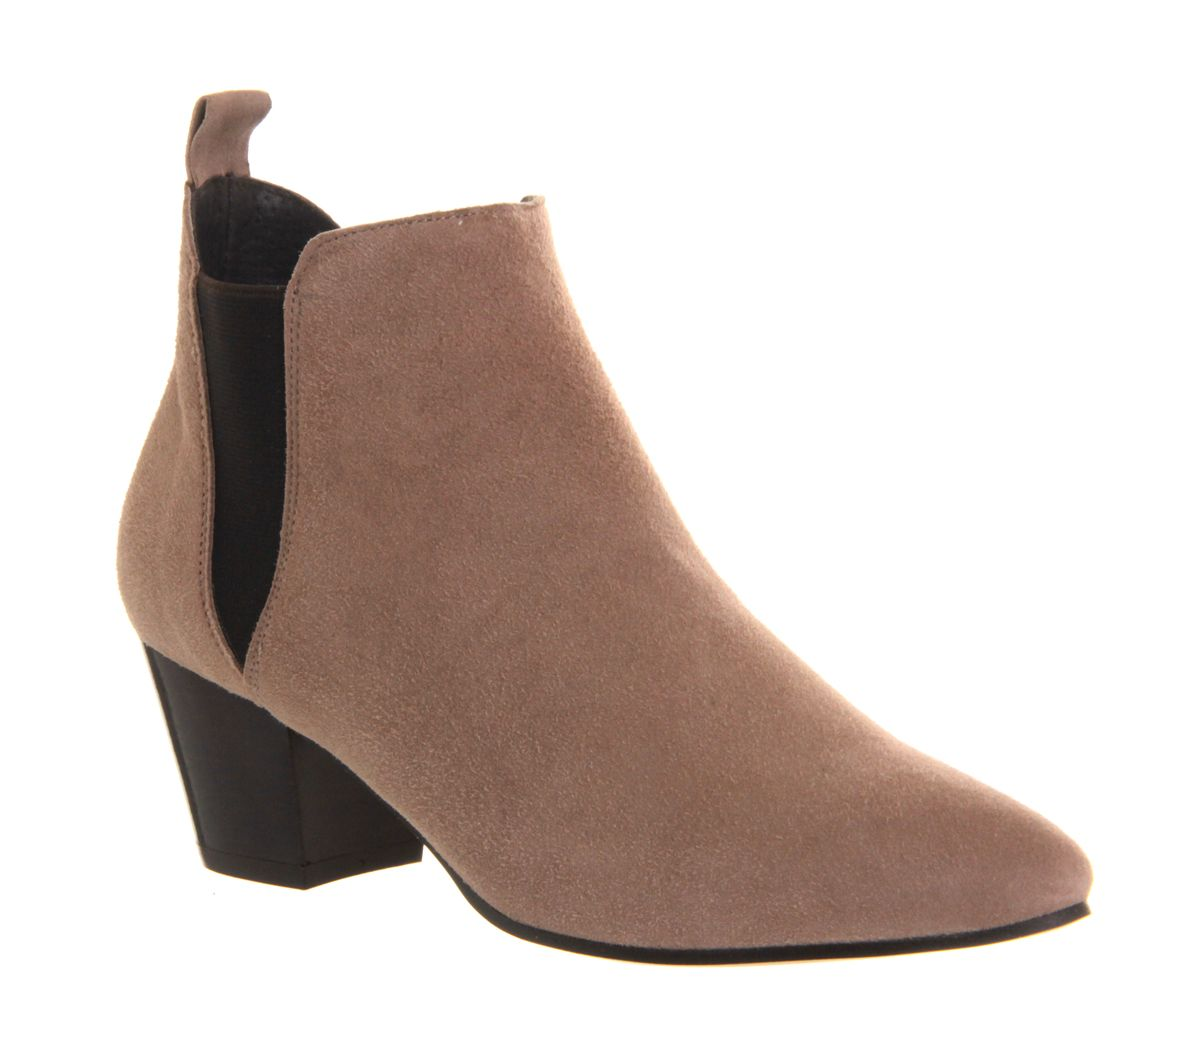 Coolcat almond toe chelsea ankle boots